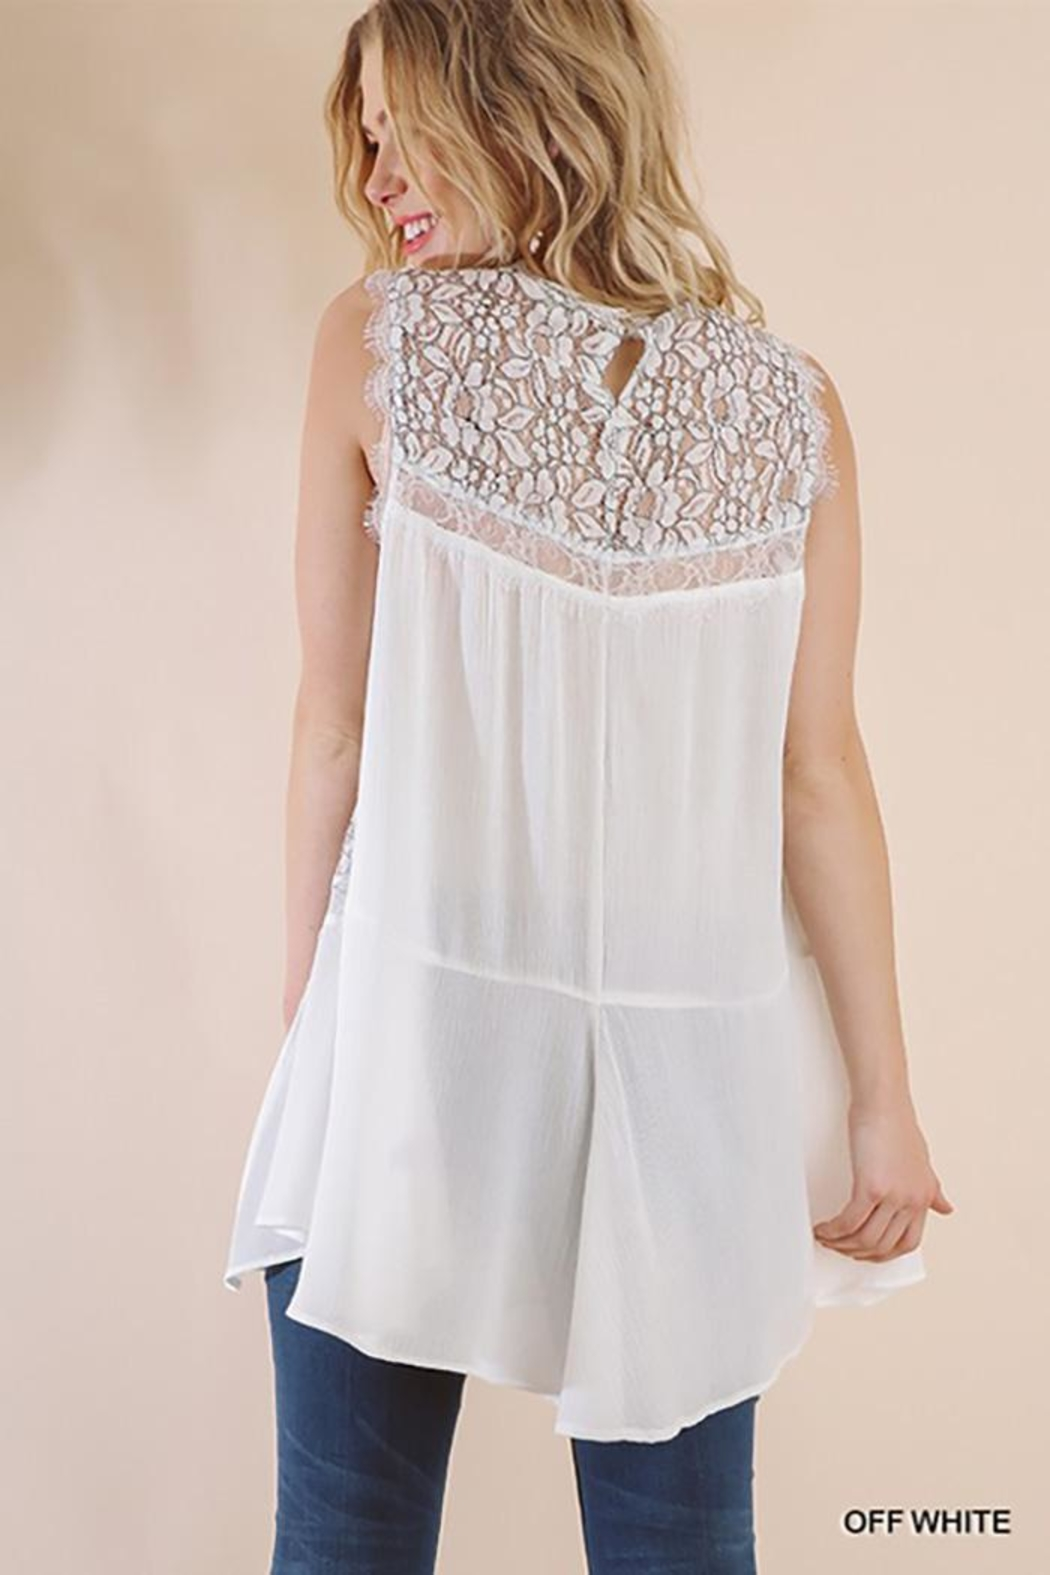 Gigio/BluHeaven Sleeveless Sheer Lace Tunic Top - Front Full Image